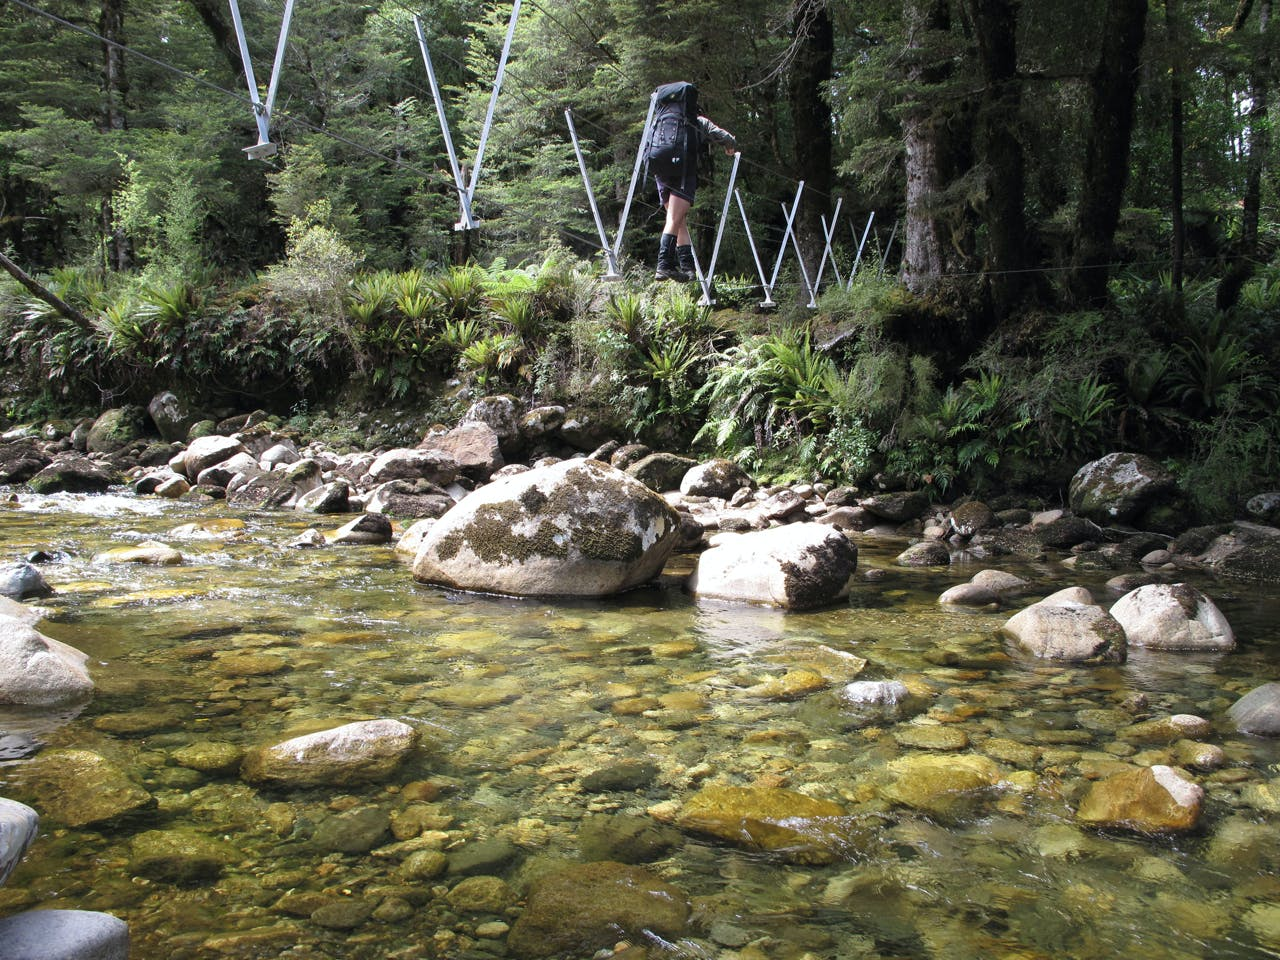 Crossing the Rata Burn near Lake Hauroko.